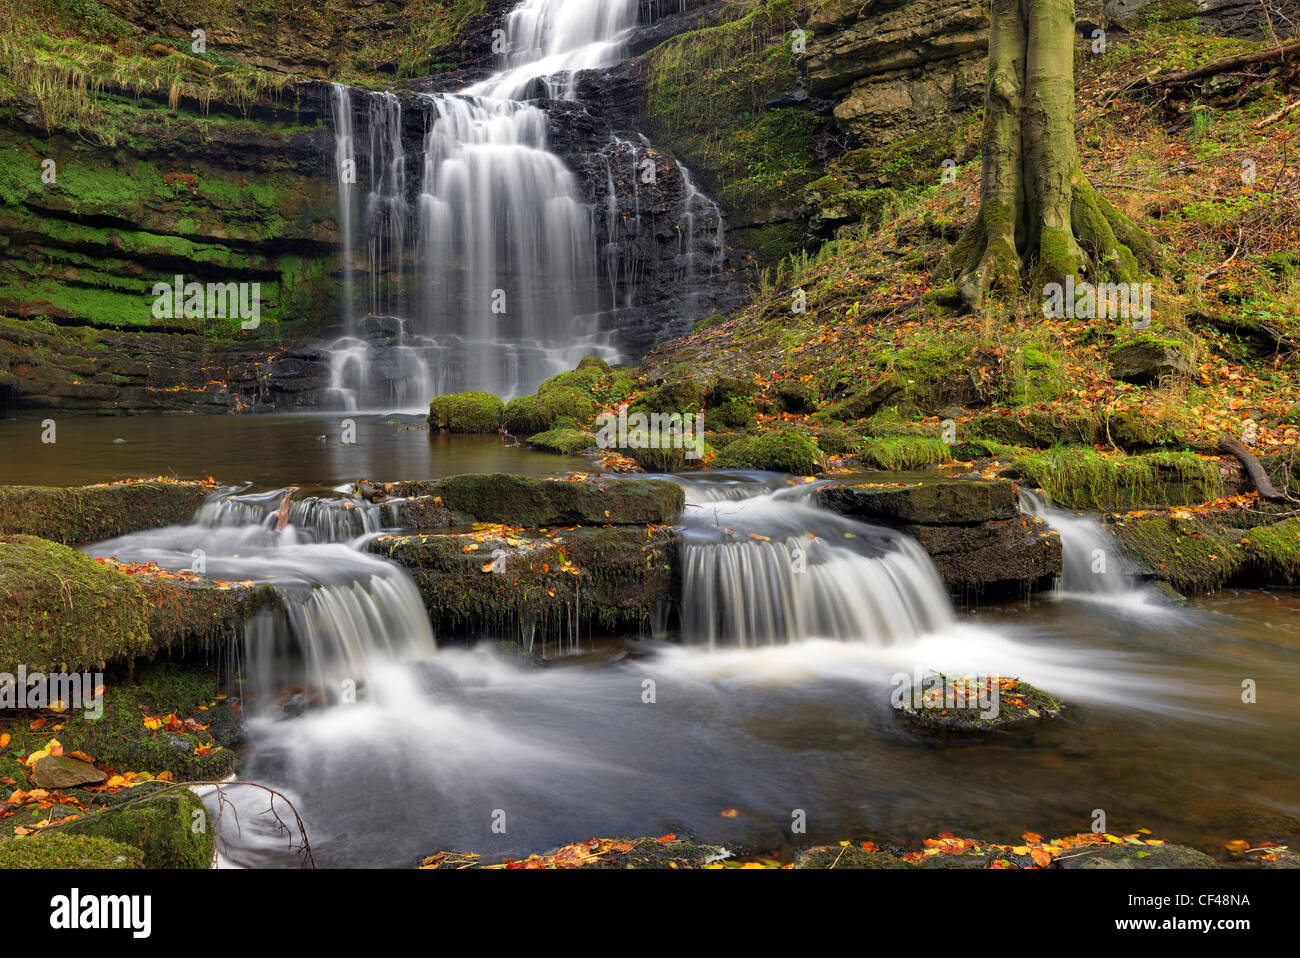 Scaleber force, an attractive waterfall on the Scaleber beck in Stockdale. - Stock Image